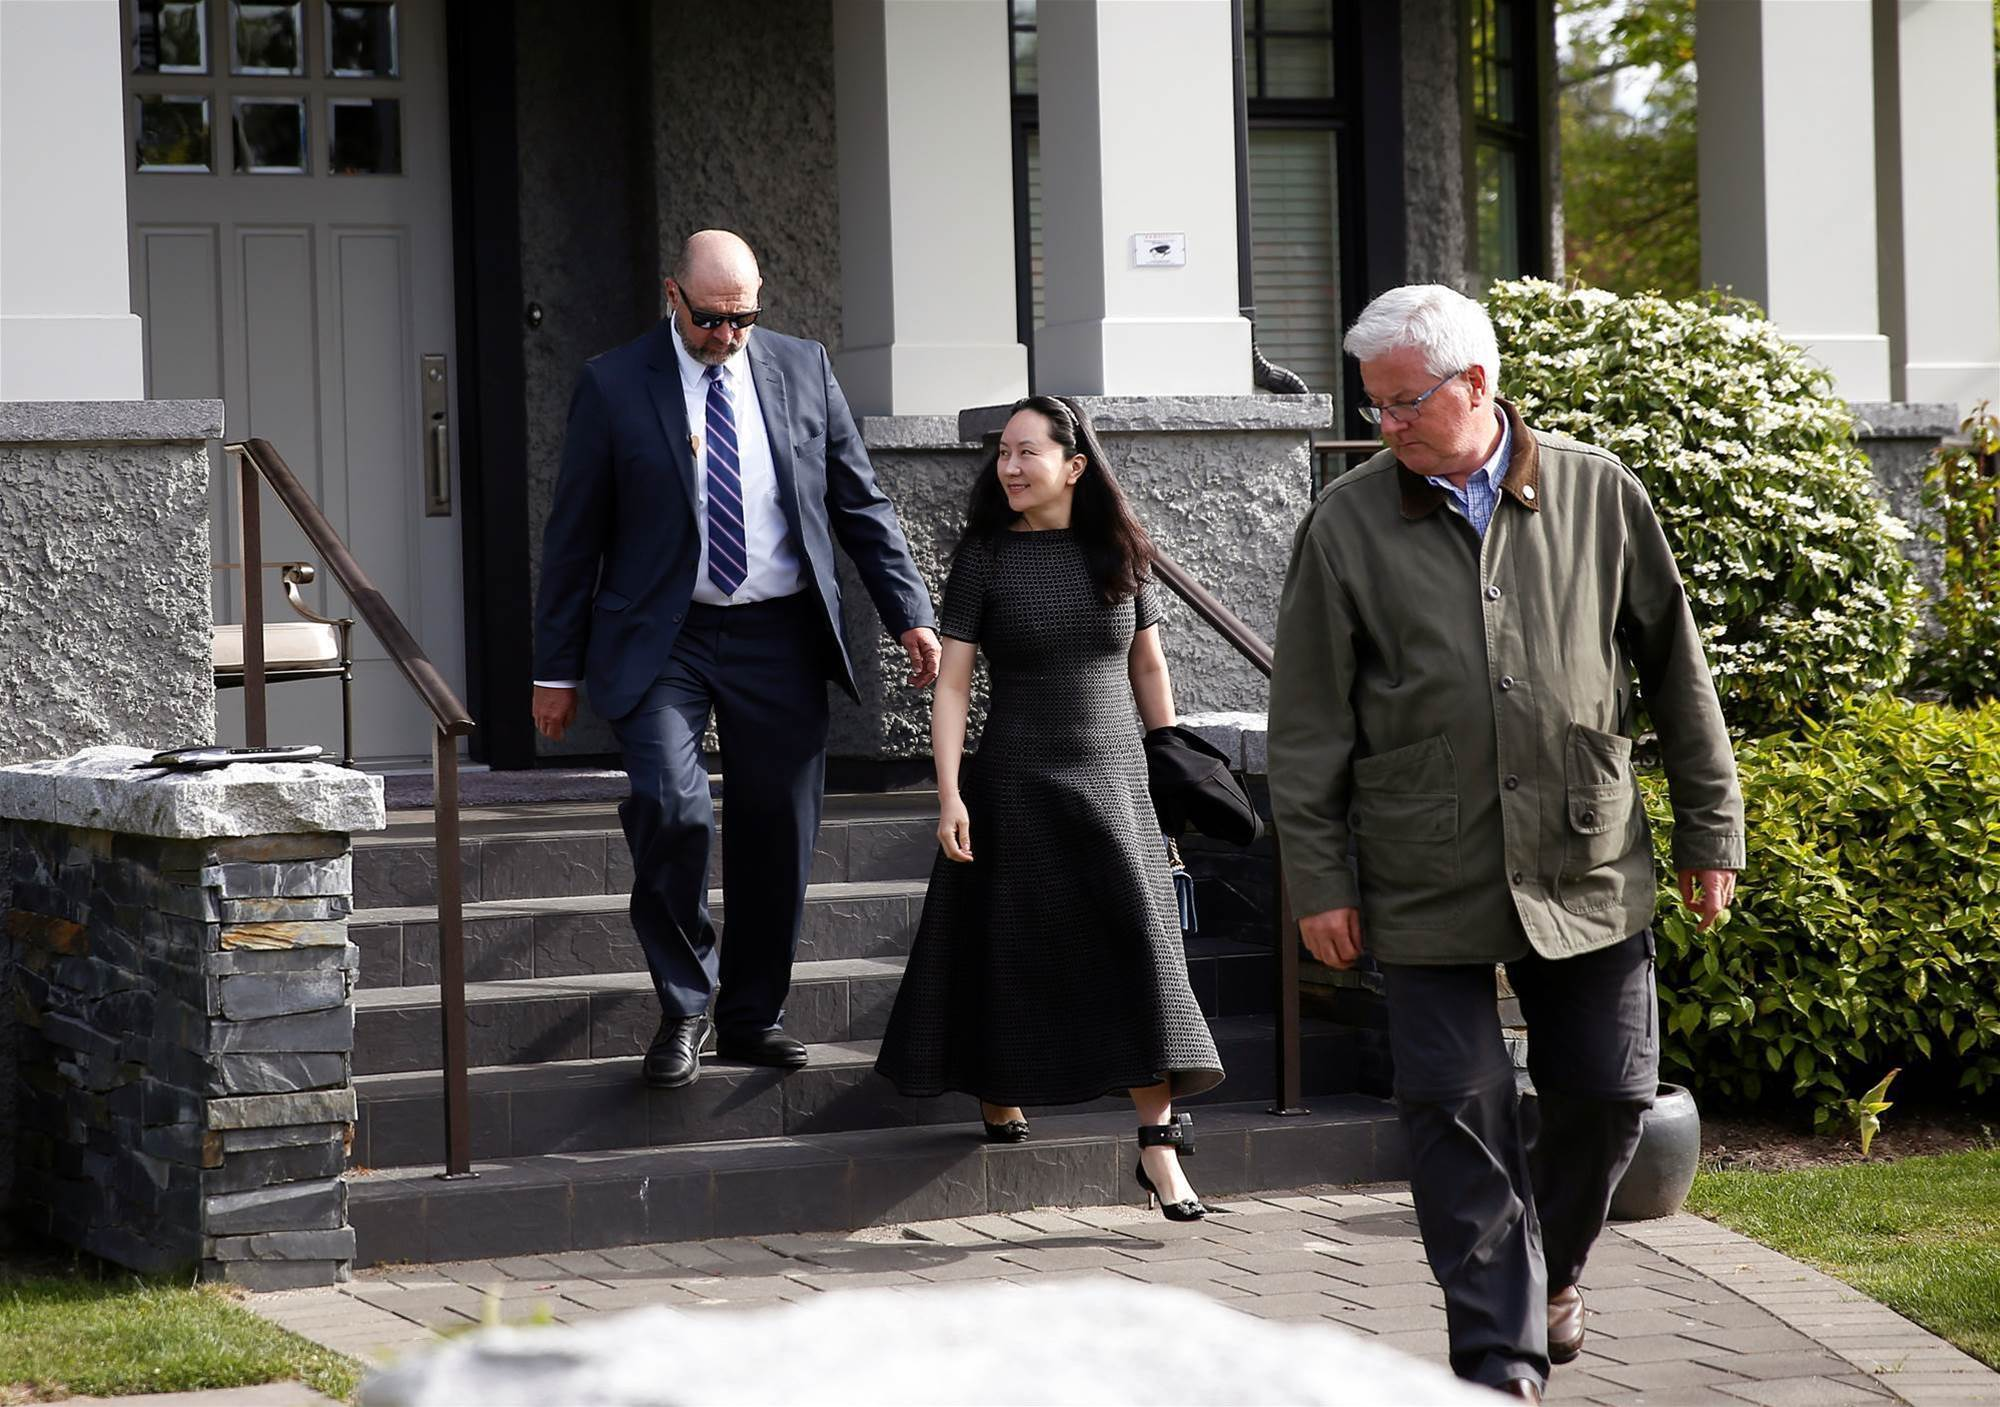 Huawei says detained CFO to seek extradition stay, rights violated